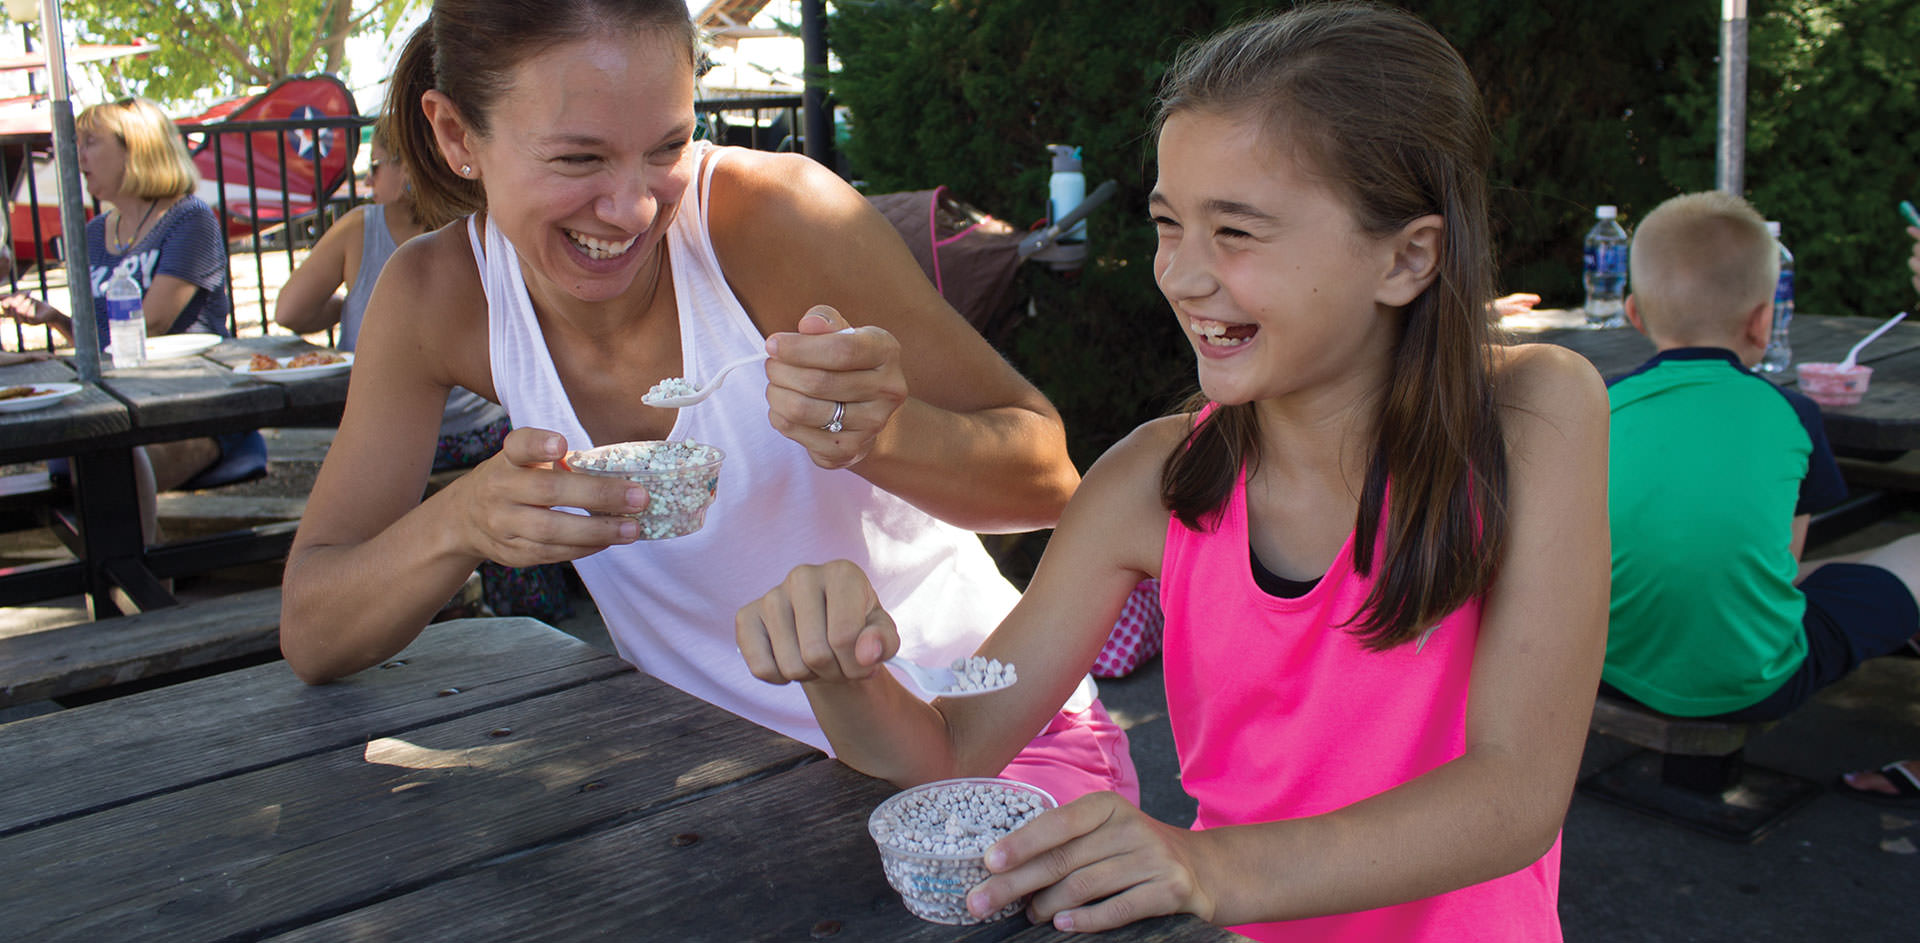 Mom and daughter eating frozen dot ice cream at a picnic table.